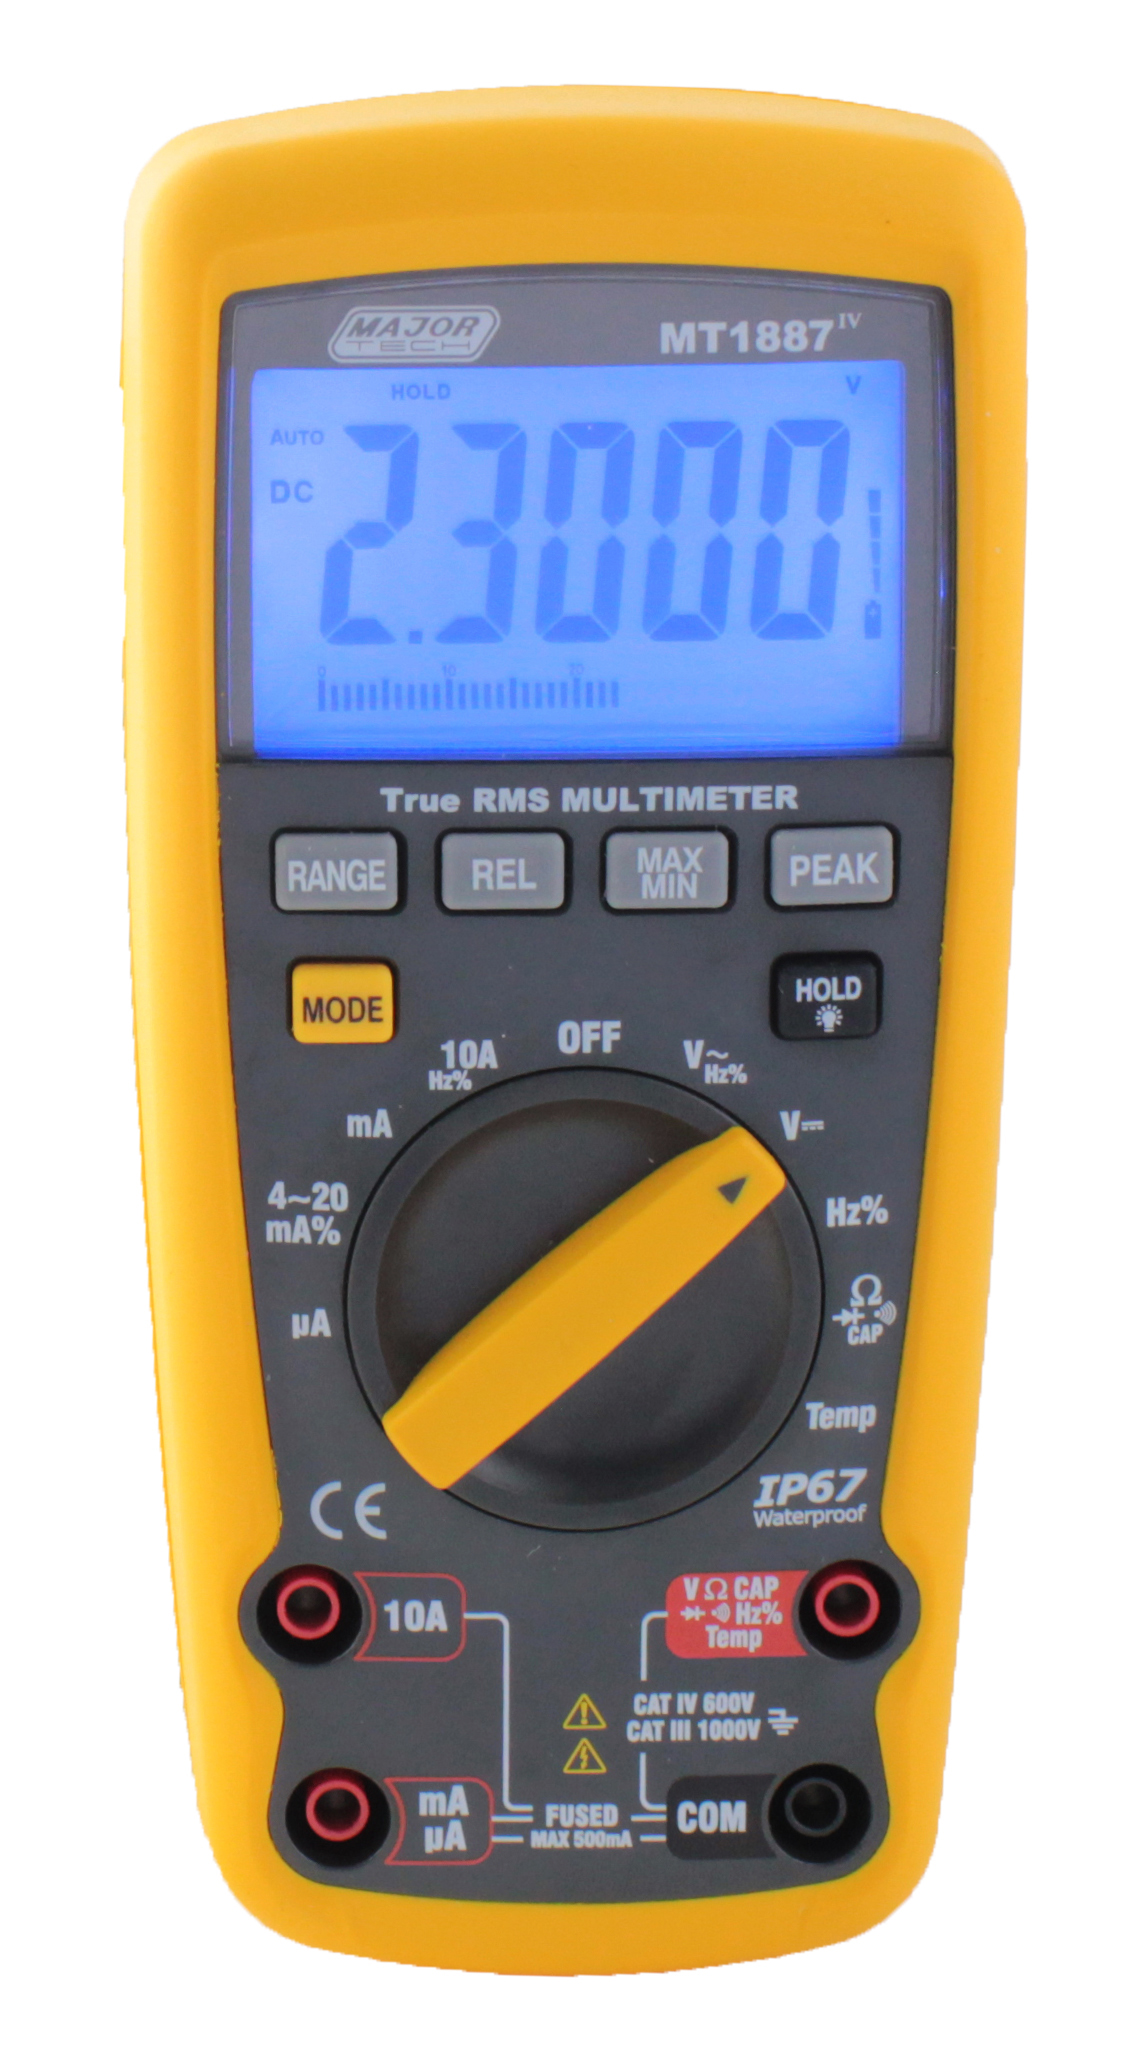 True Rms Industrial Multimeter Ee Publishers Electricalcircuits1 The Mt1887 From Major Tech Measures Ac Voltage And Current Readings Yielding Accurate Results On Sine Waves As Well Non Sinusoidal